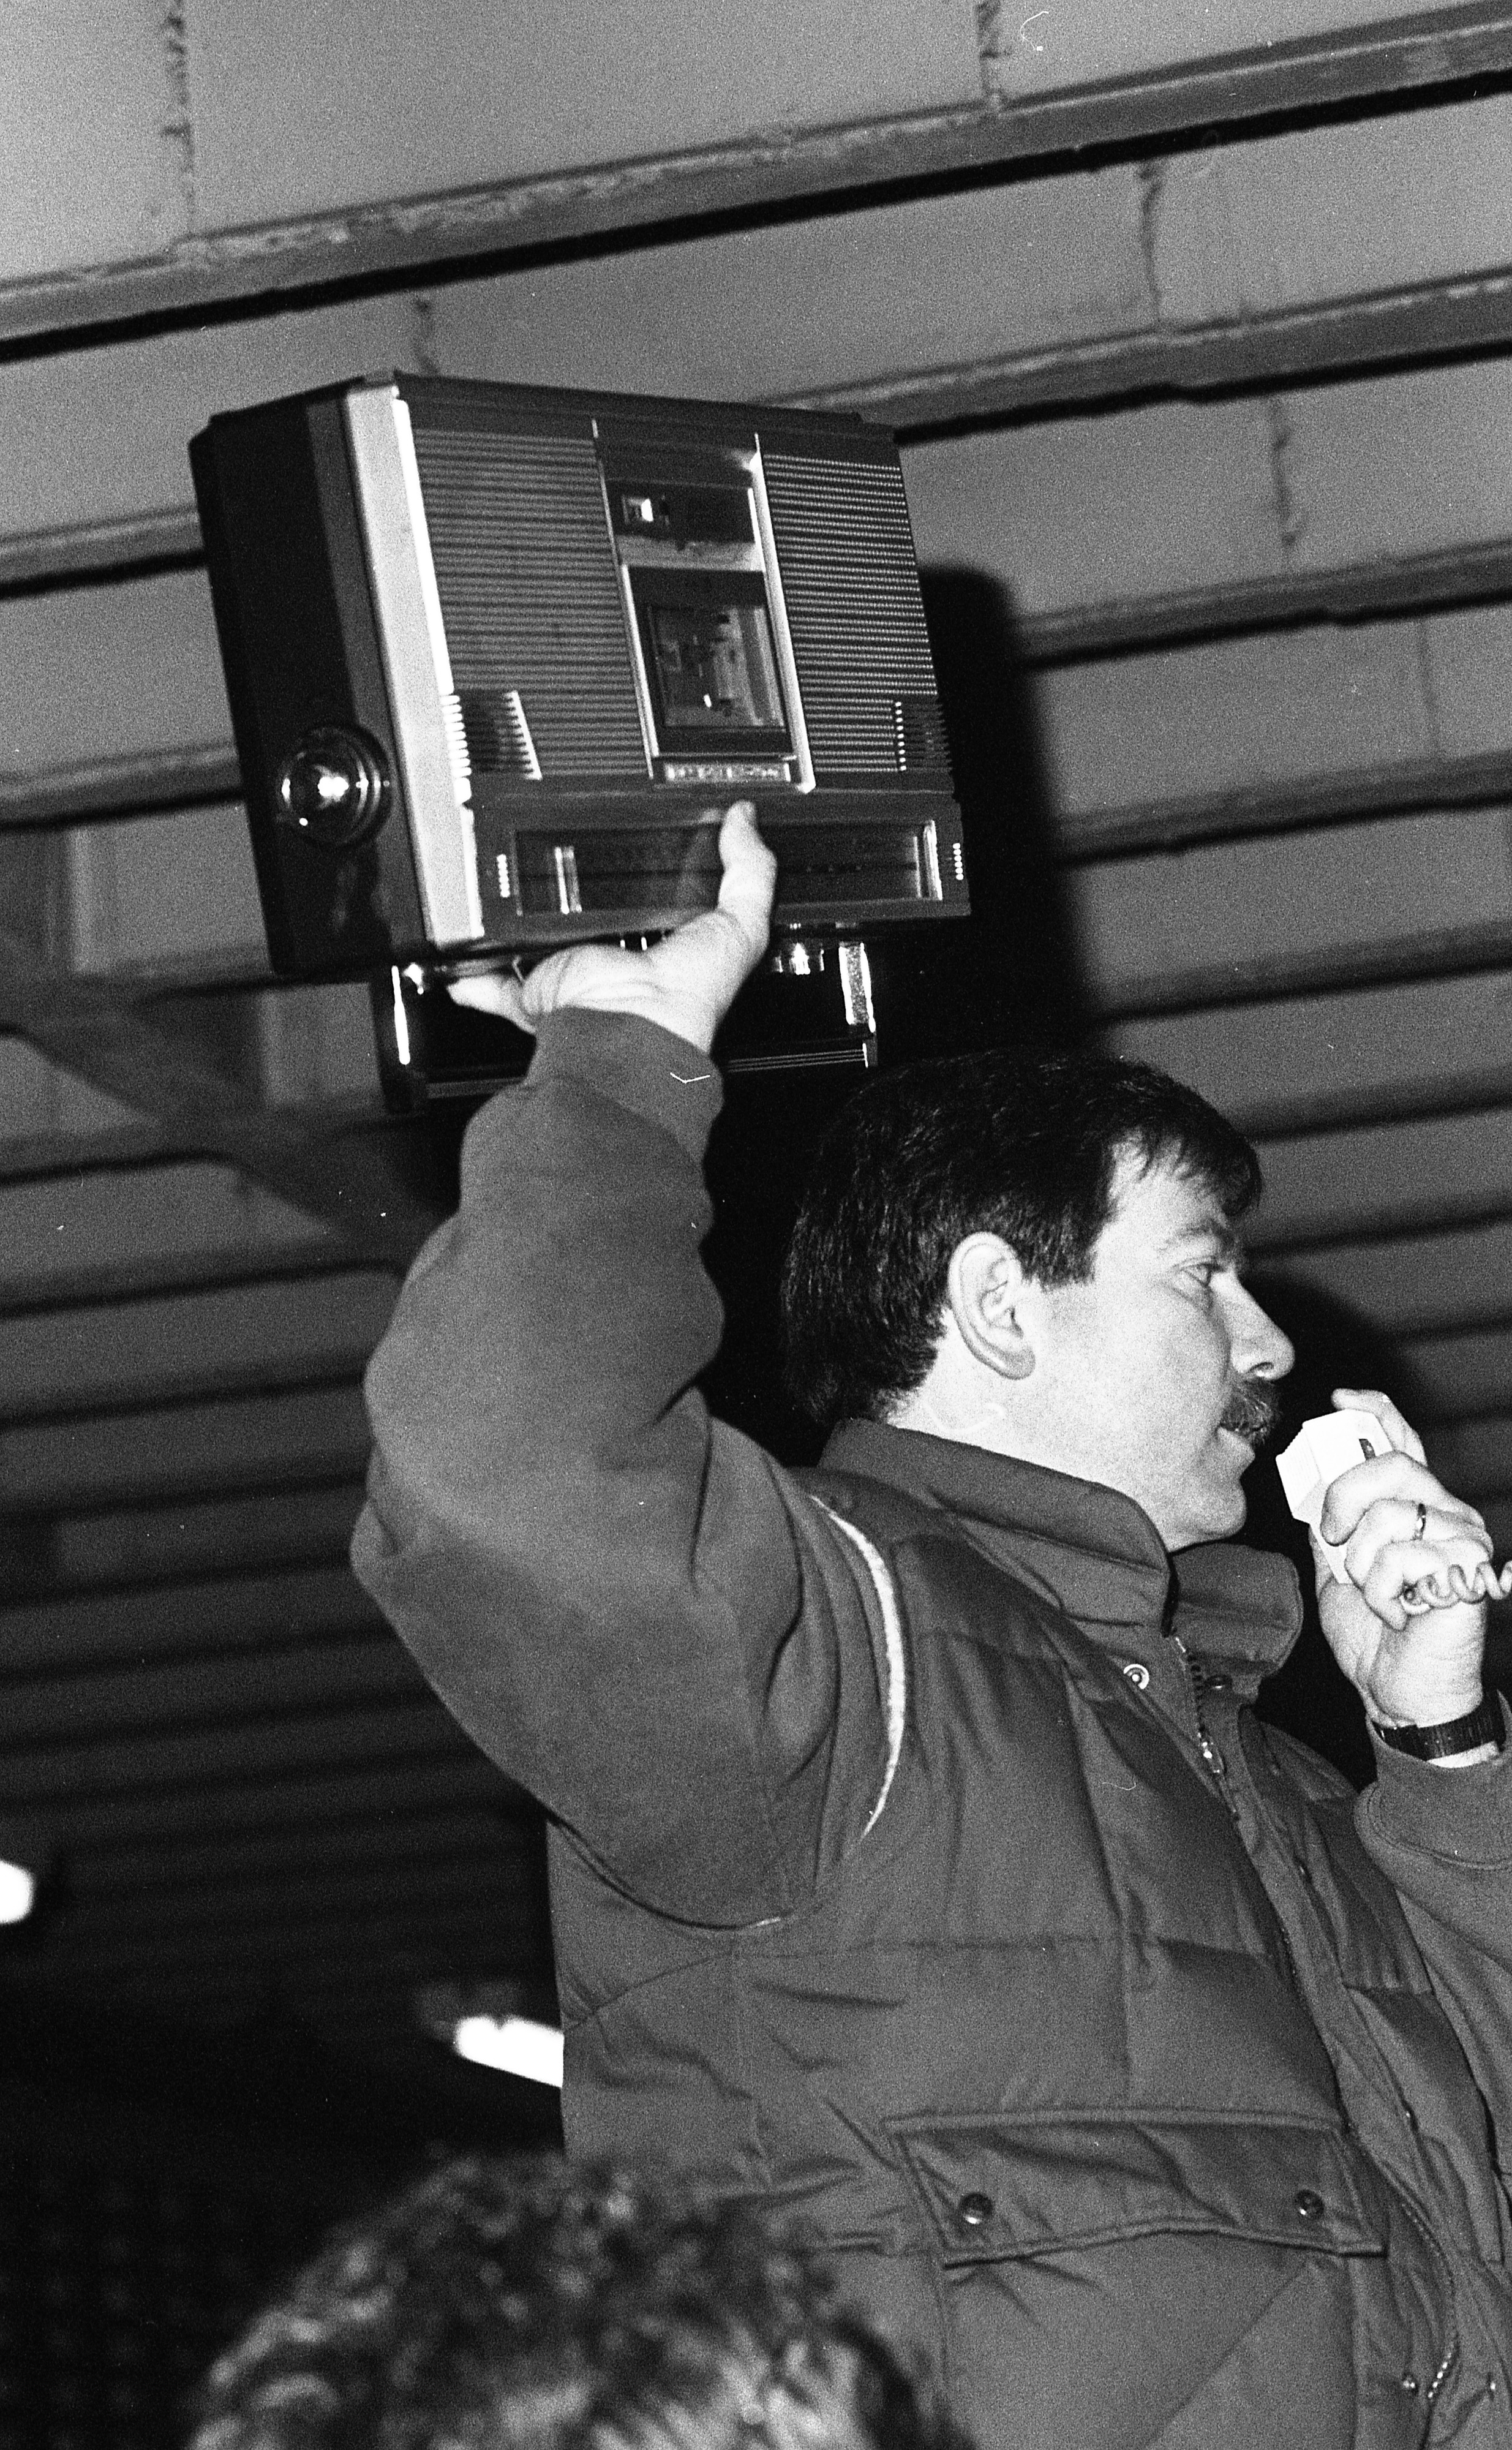 Ann Arbor Police Department 'Auctioneer' Officer David Woodside, March 1990 image